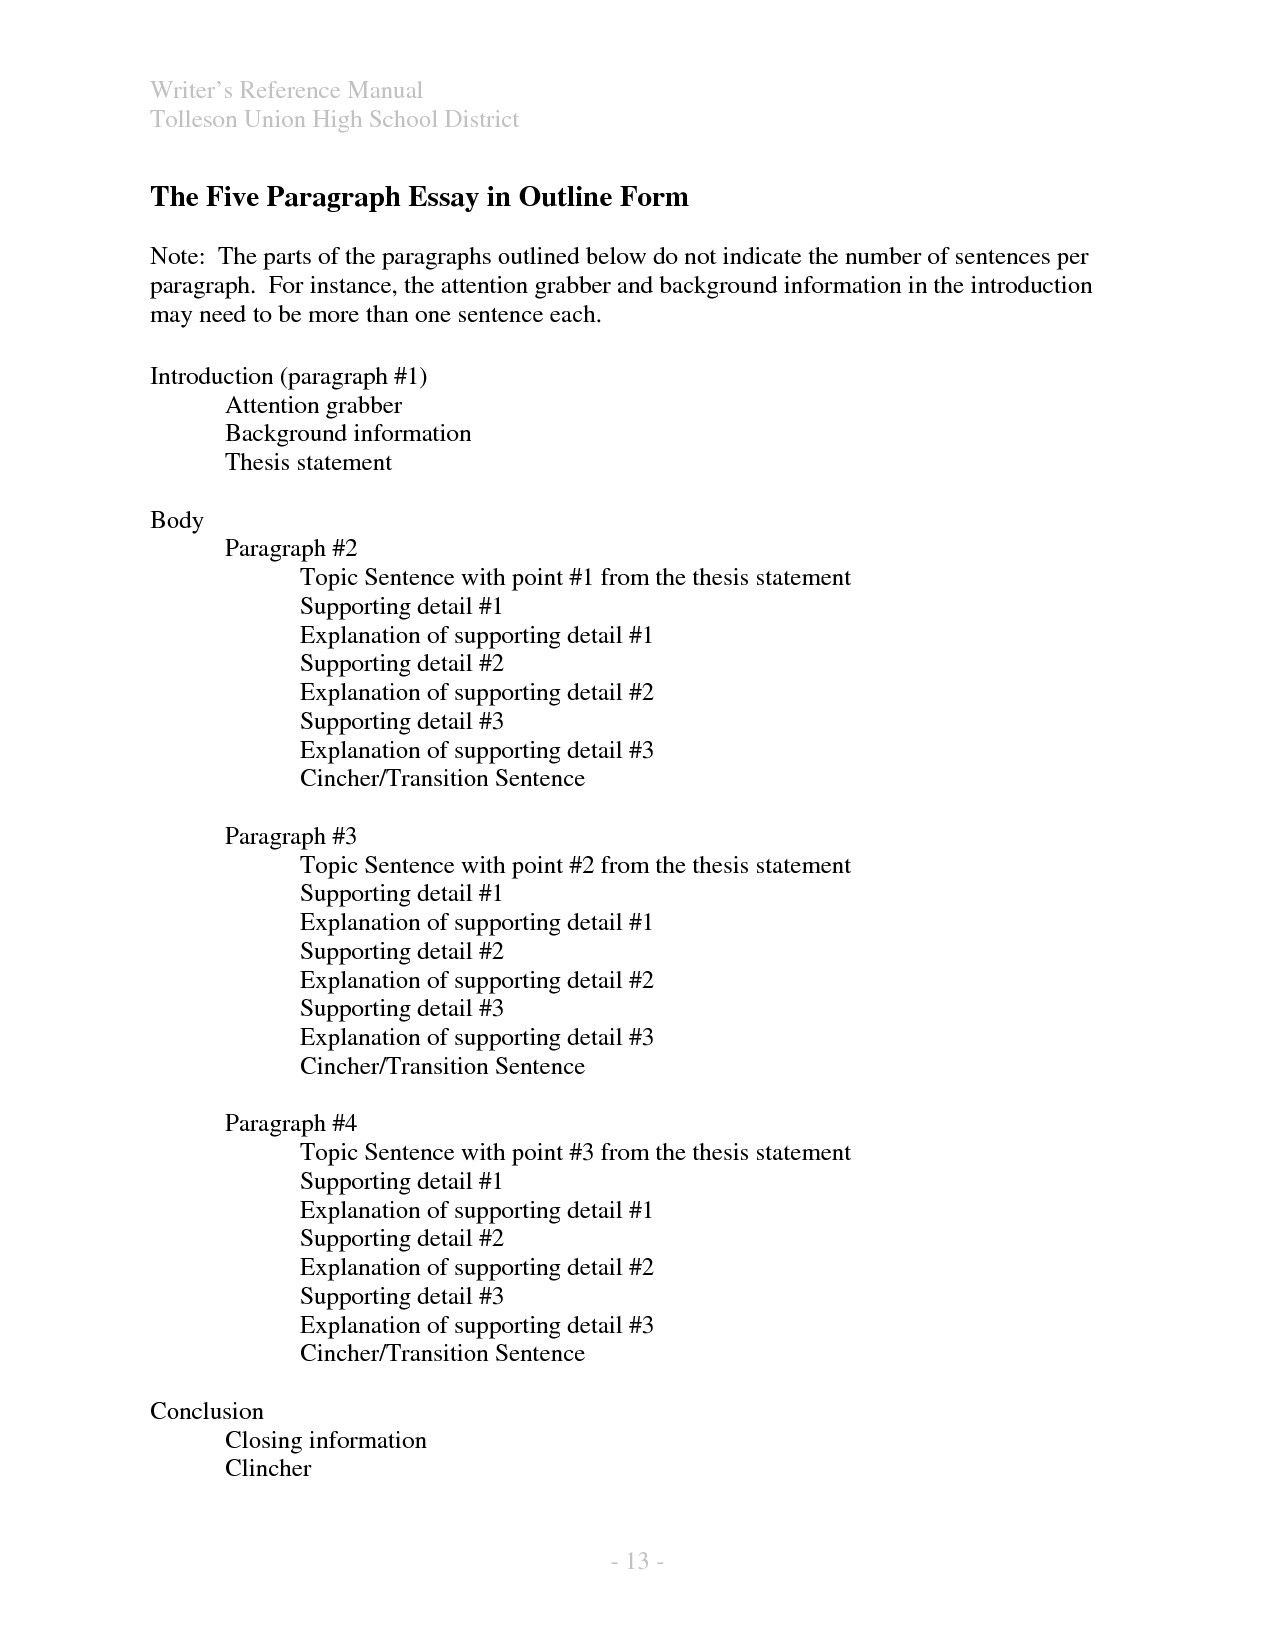 011 Intro Paragraph Outline Research Best Paper Introduction For Full